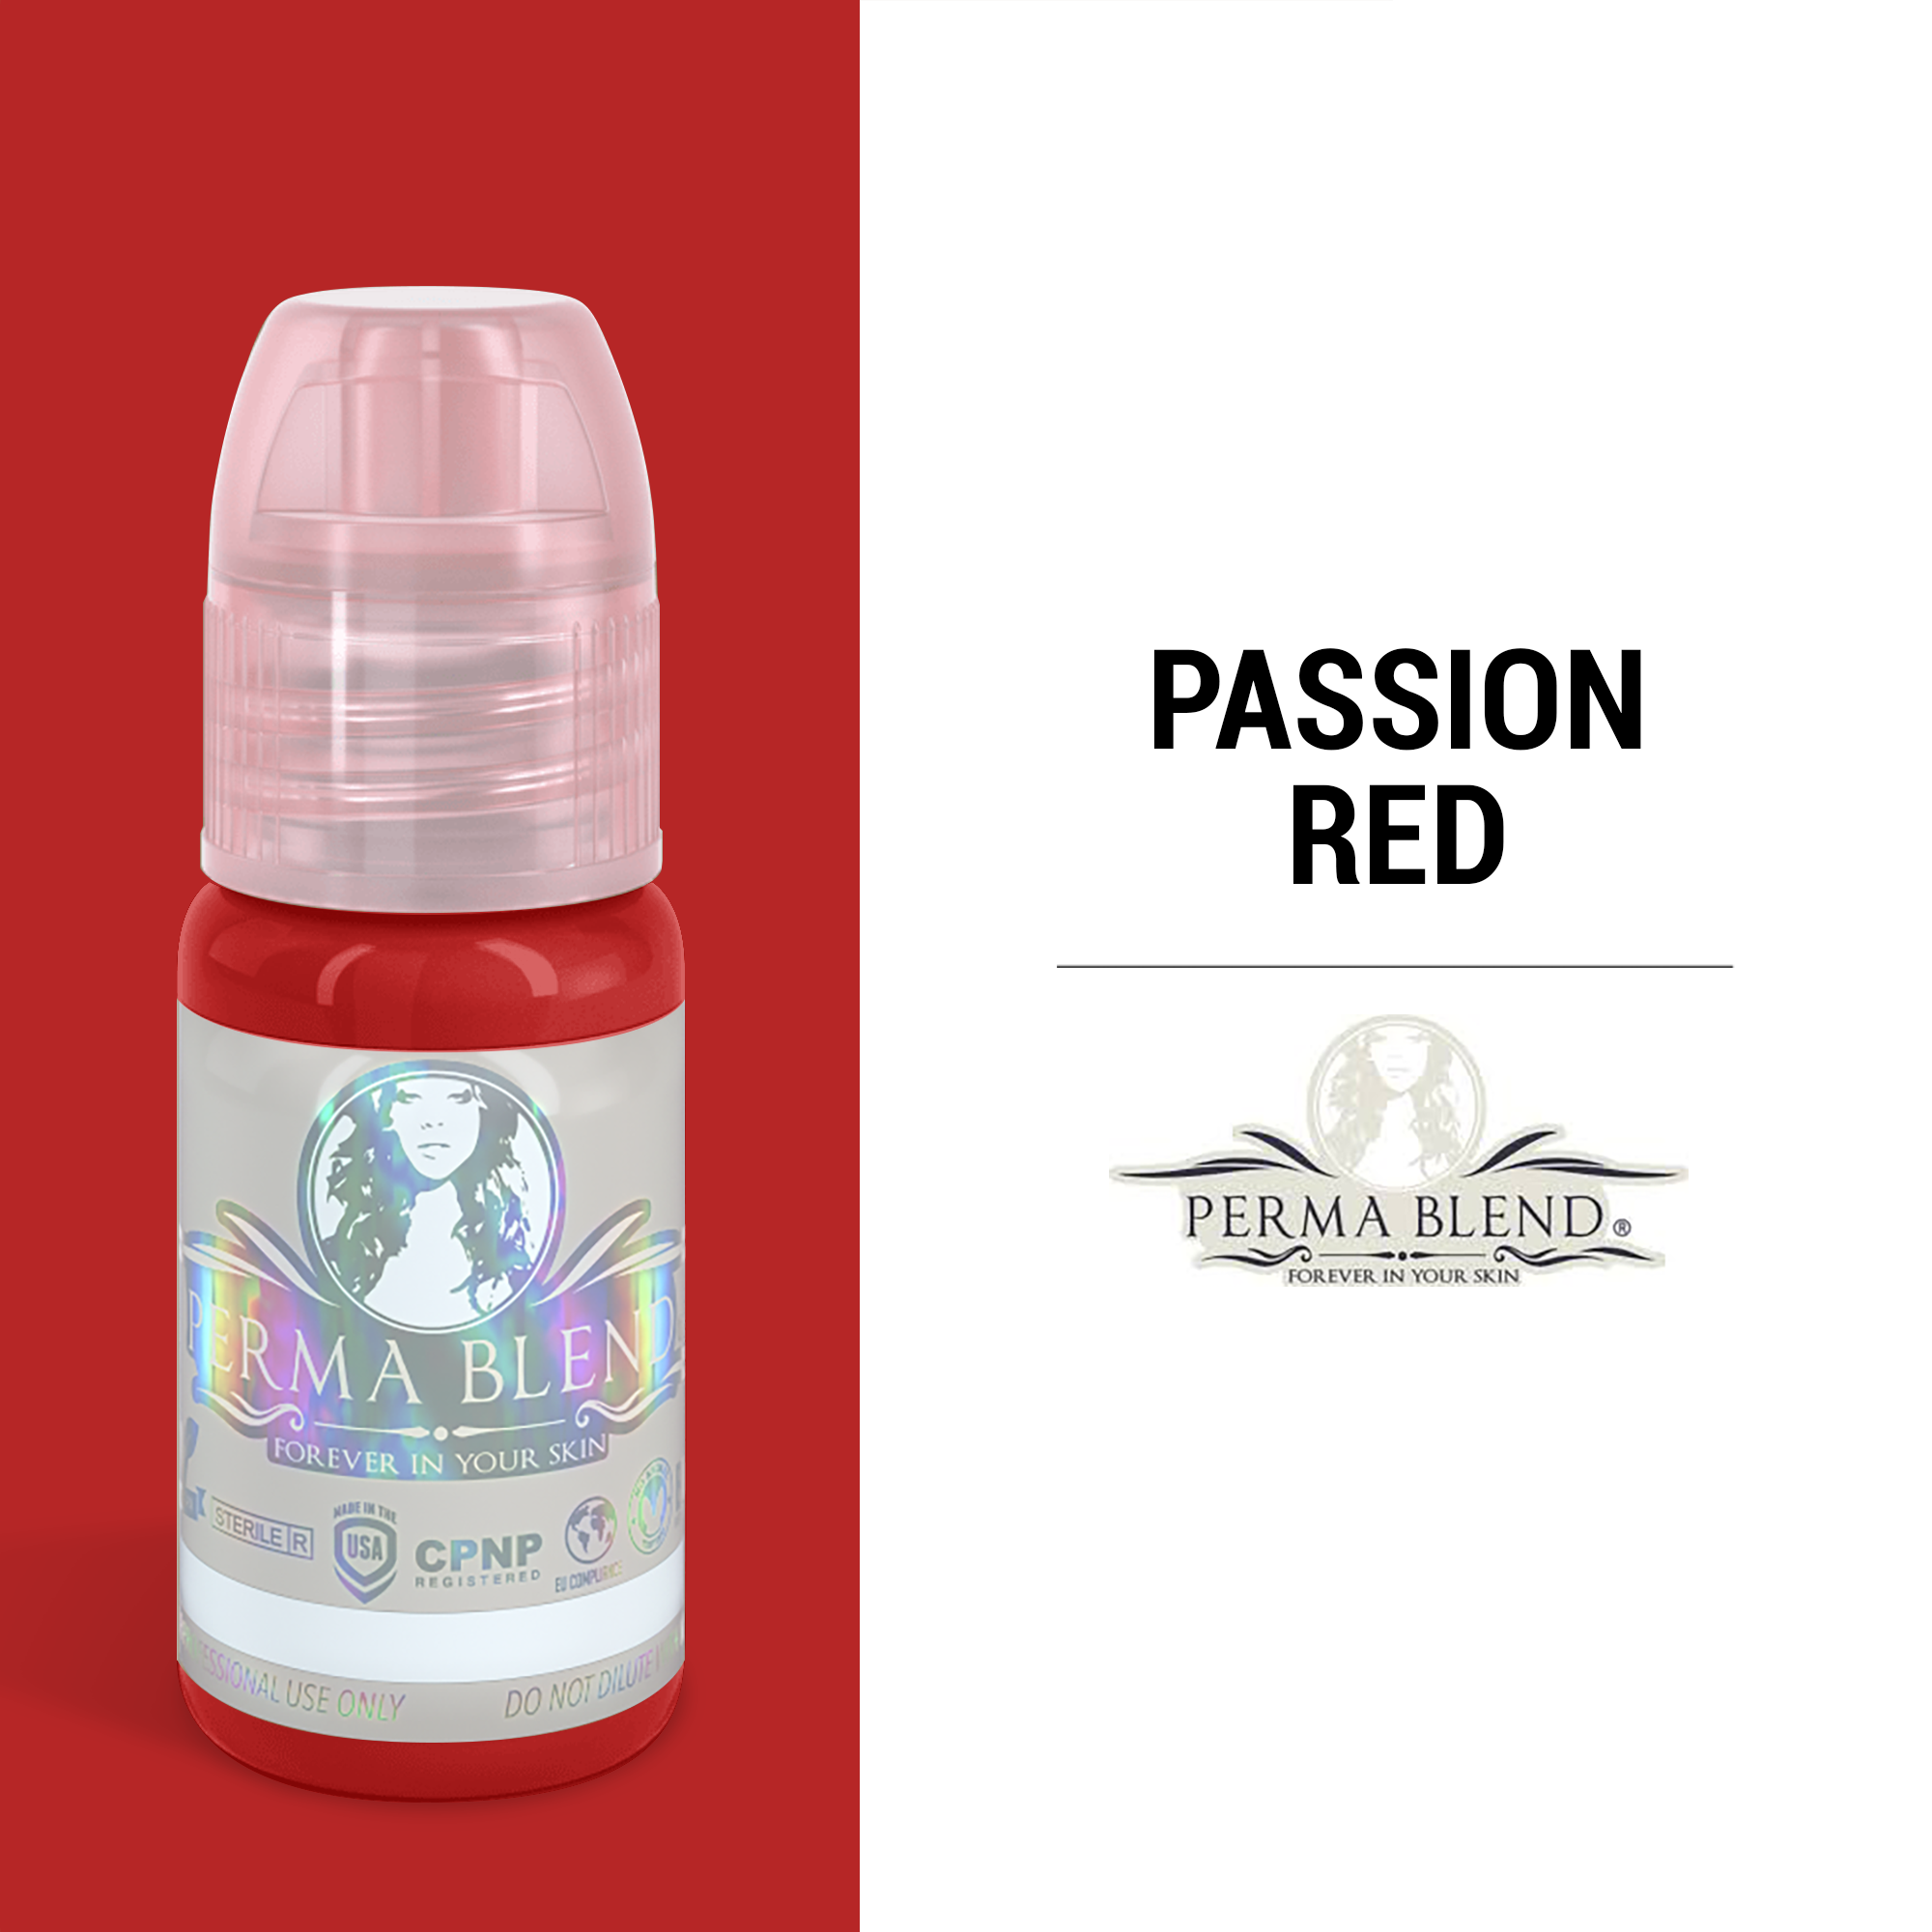 Perma Blend Passion Red